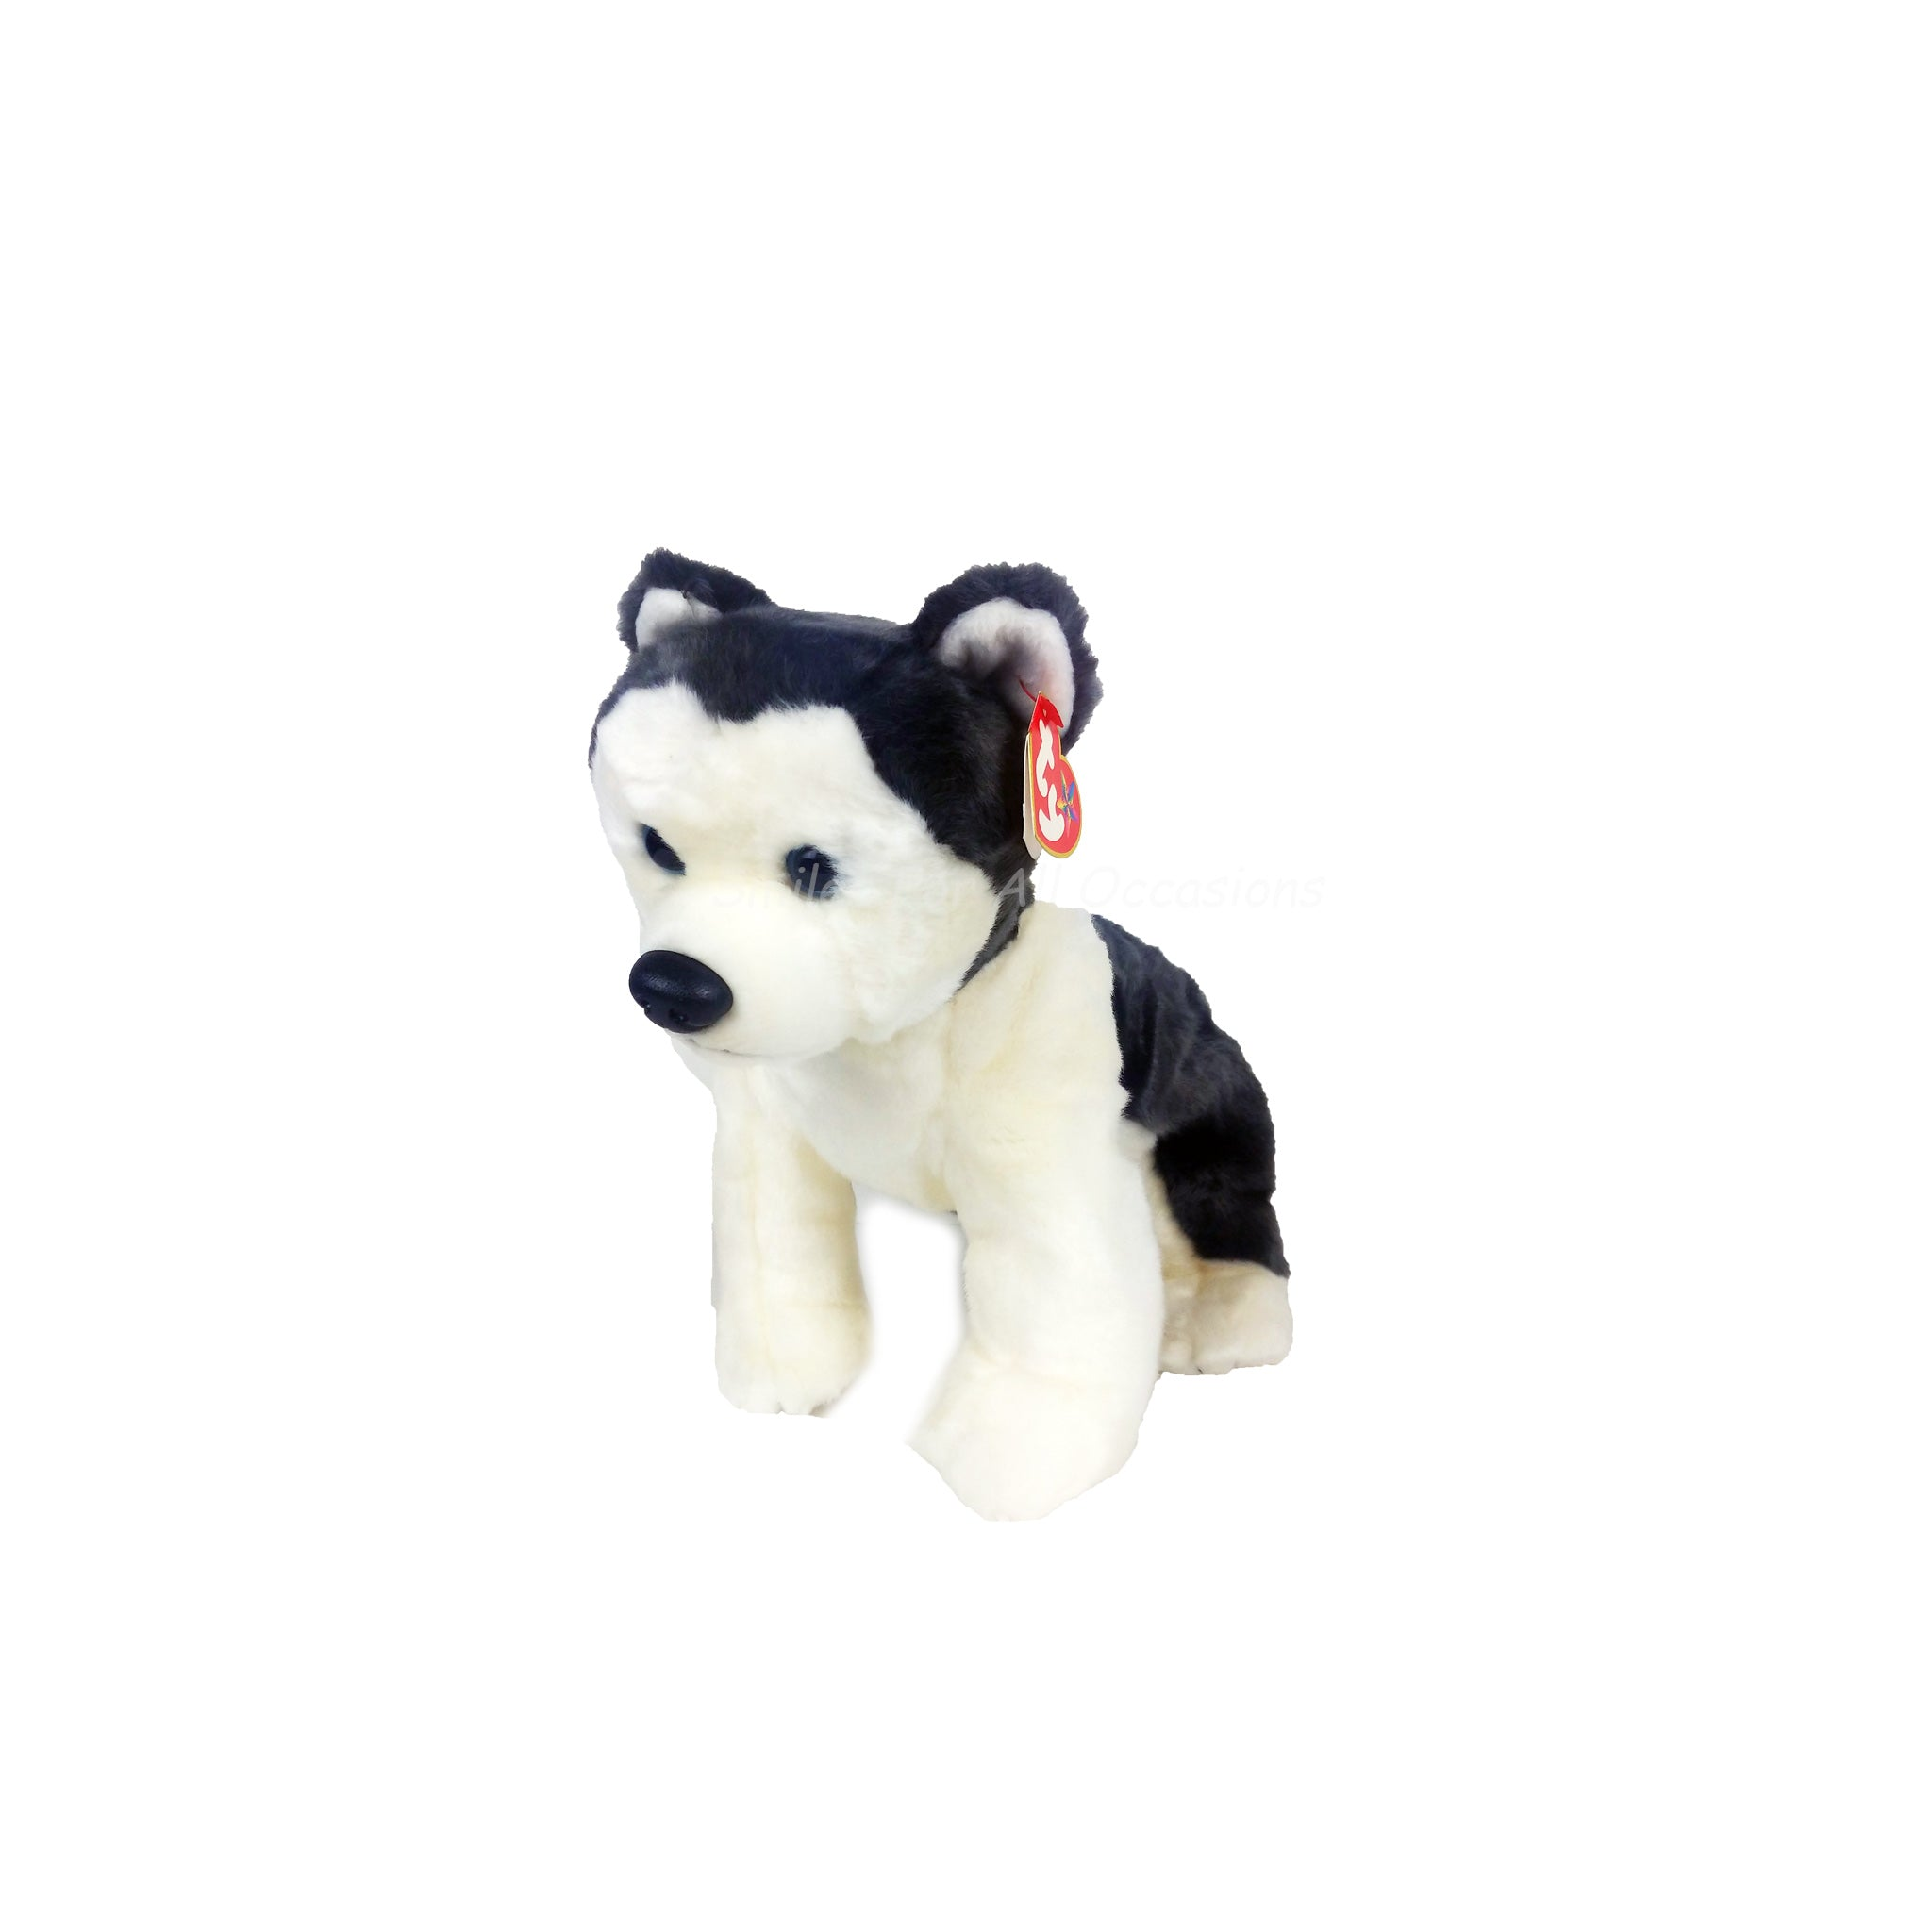 TY Husky Stuffed Animal